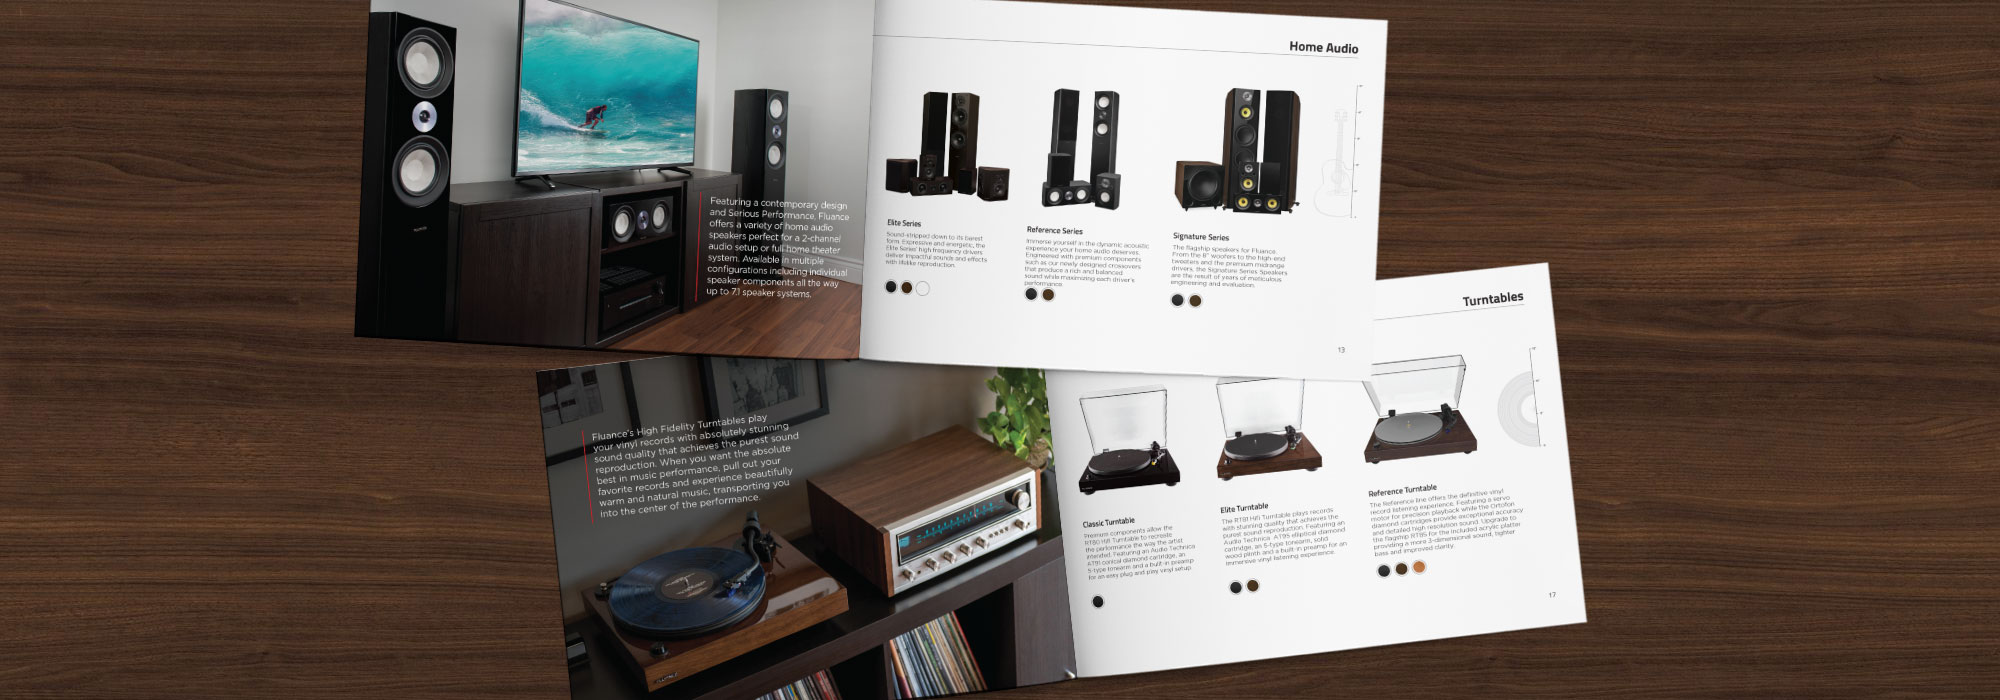 Turntables, Home Theater Surround Sound Speaker Systems and Home Audio Products | Fluance